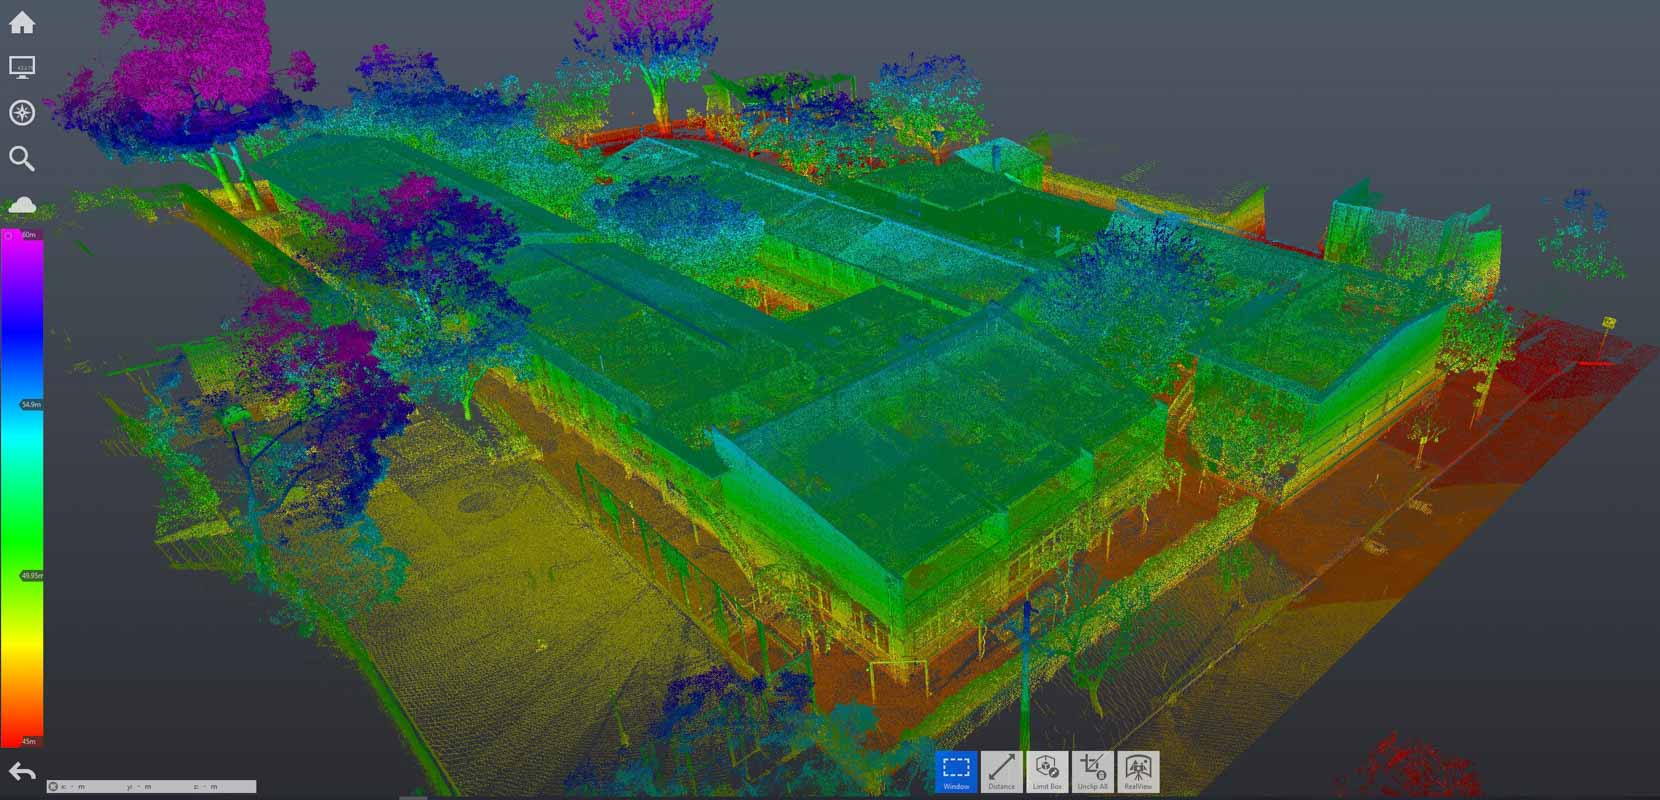 REALSERVE SAMPLE OF 3D POINT CLOUD USED IN BUILDING VERIFICATION SERVICES